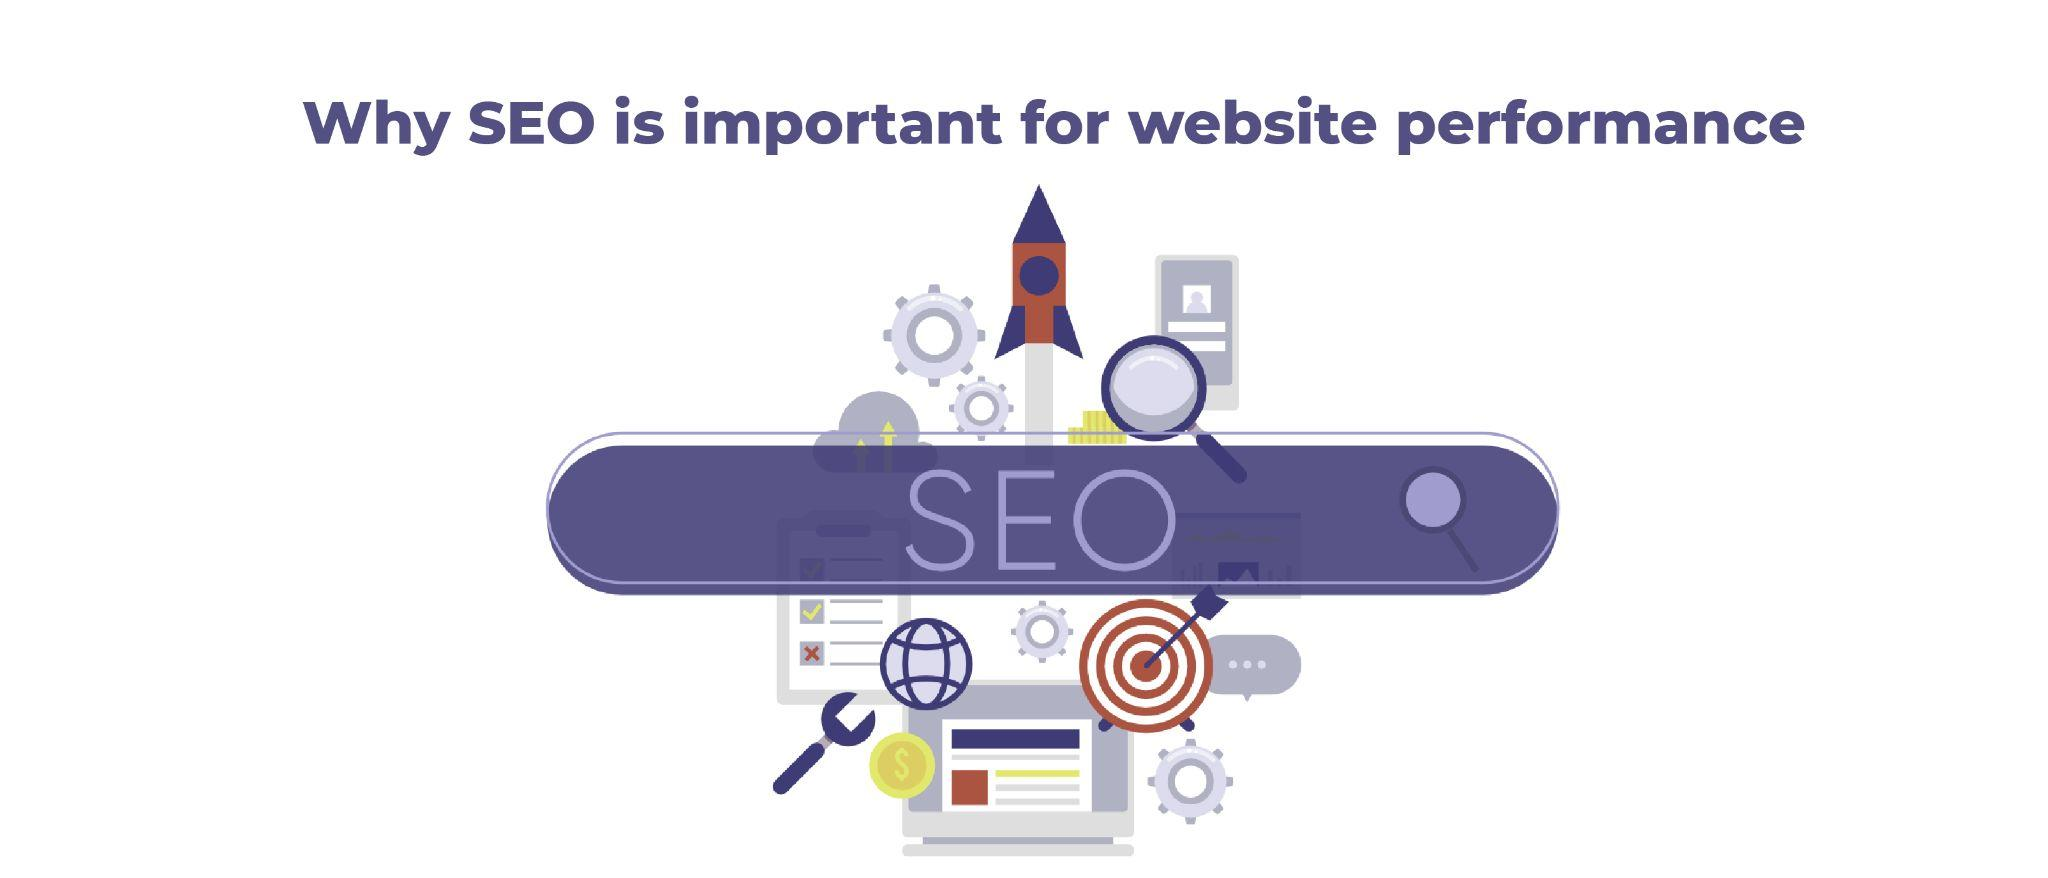 Why SEO is important for website performance